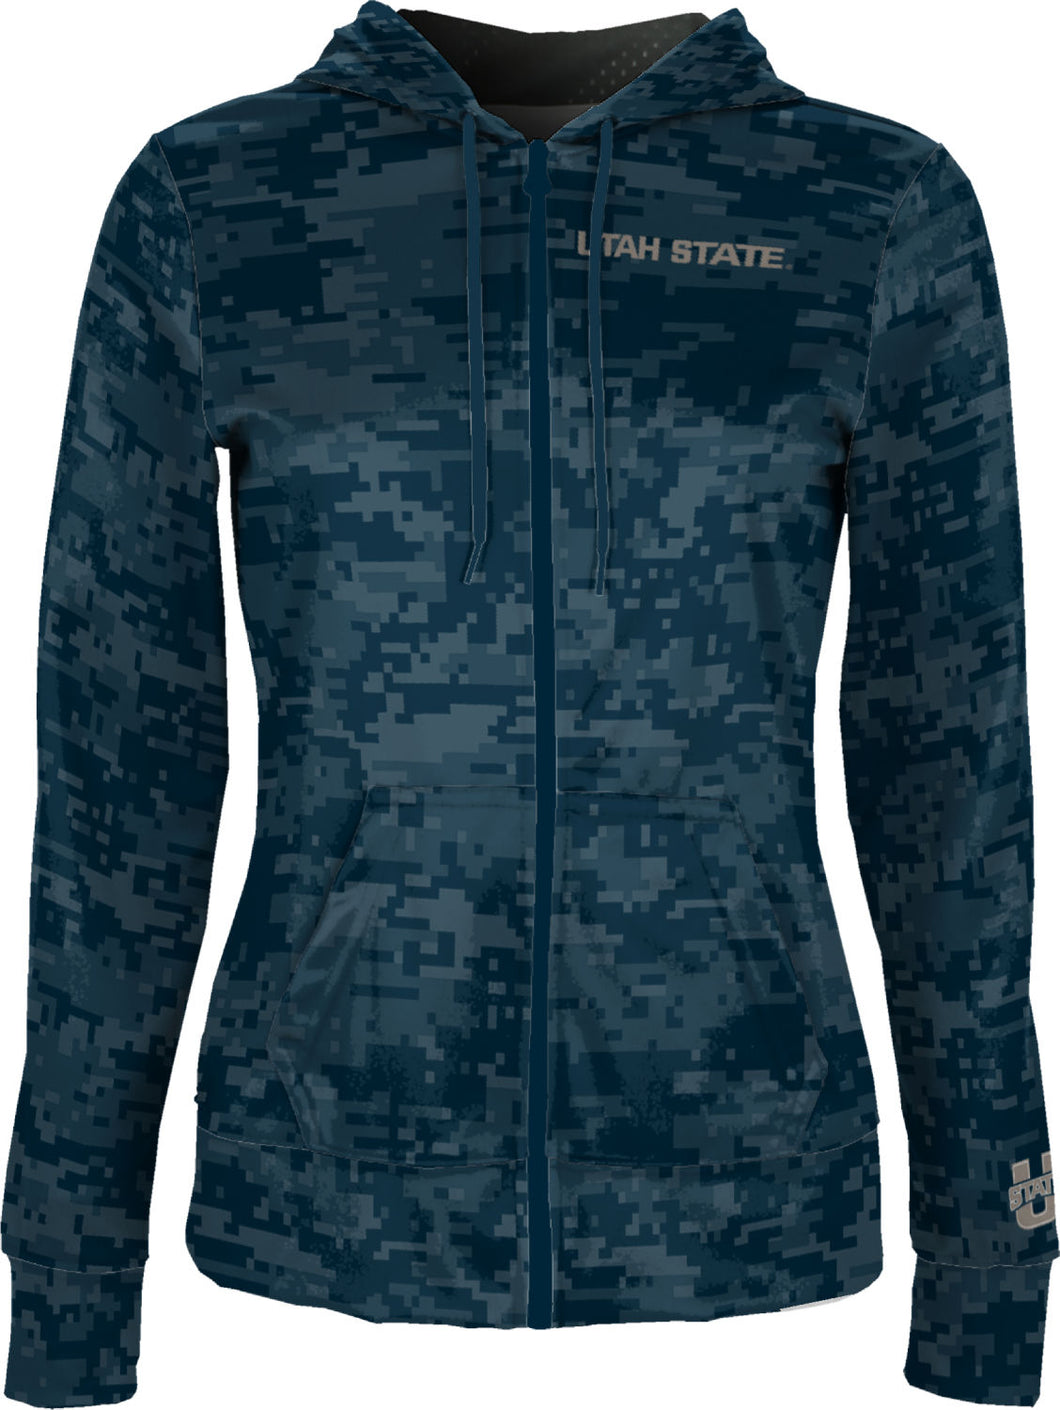 Utah State University: Women's Full Zip Hoodie - Digital